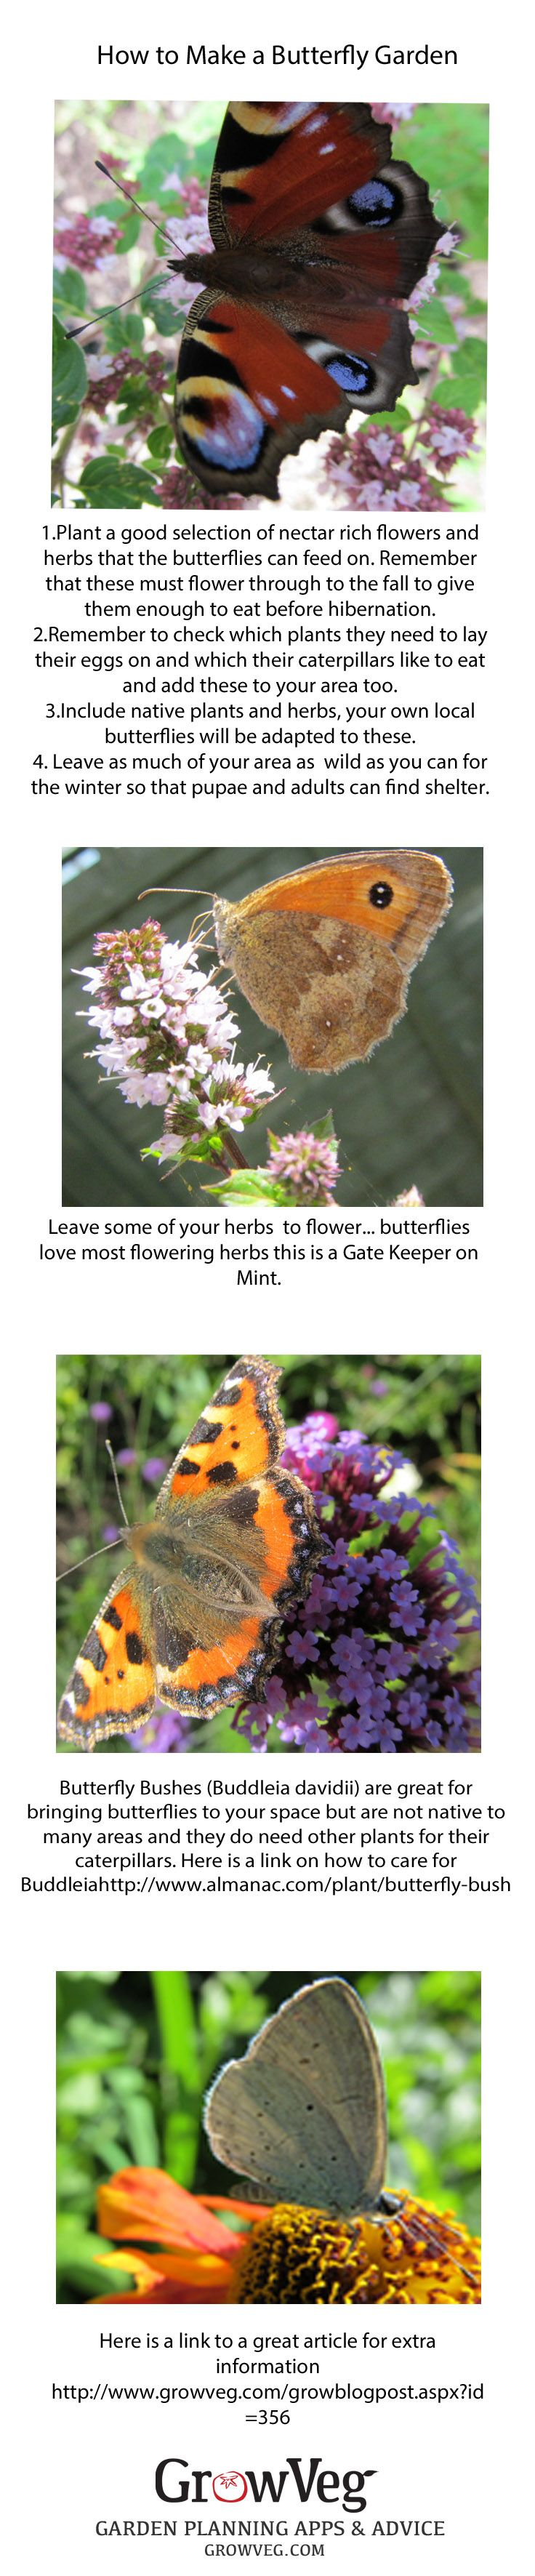 Butterfly Garden Ideas 5 climbing plants for vertical butterfly gardens How To Plant A Butterfly Garden